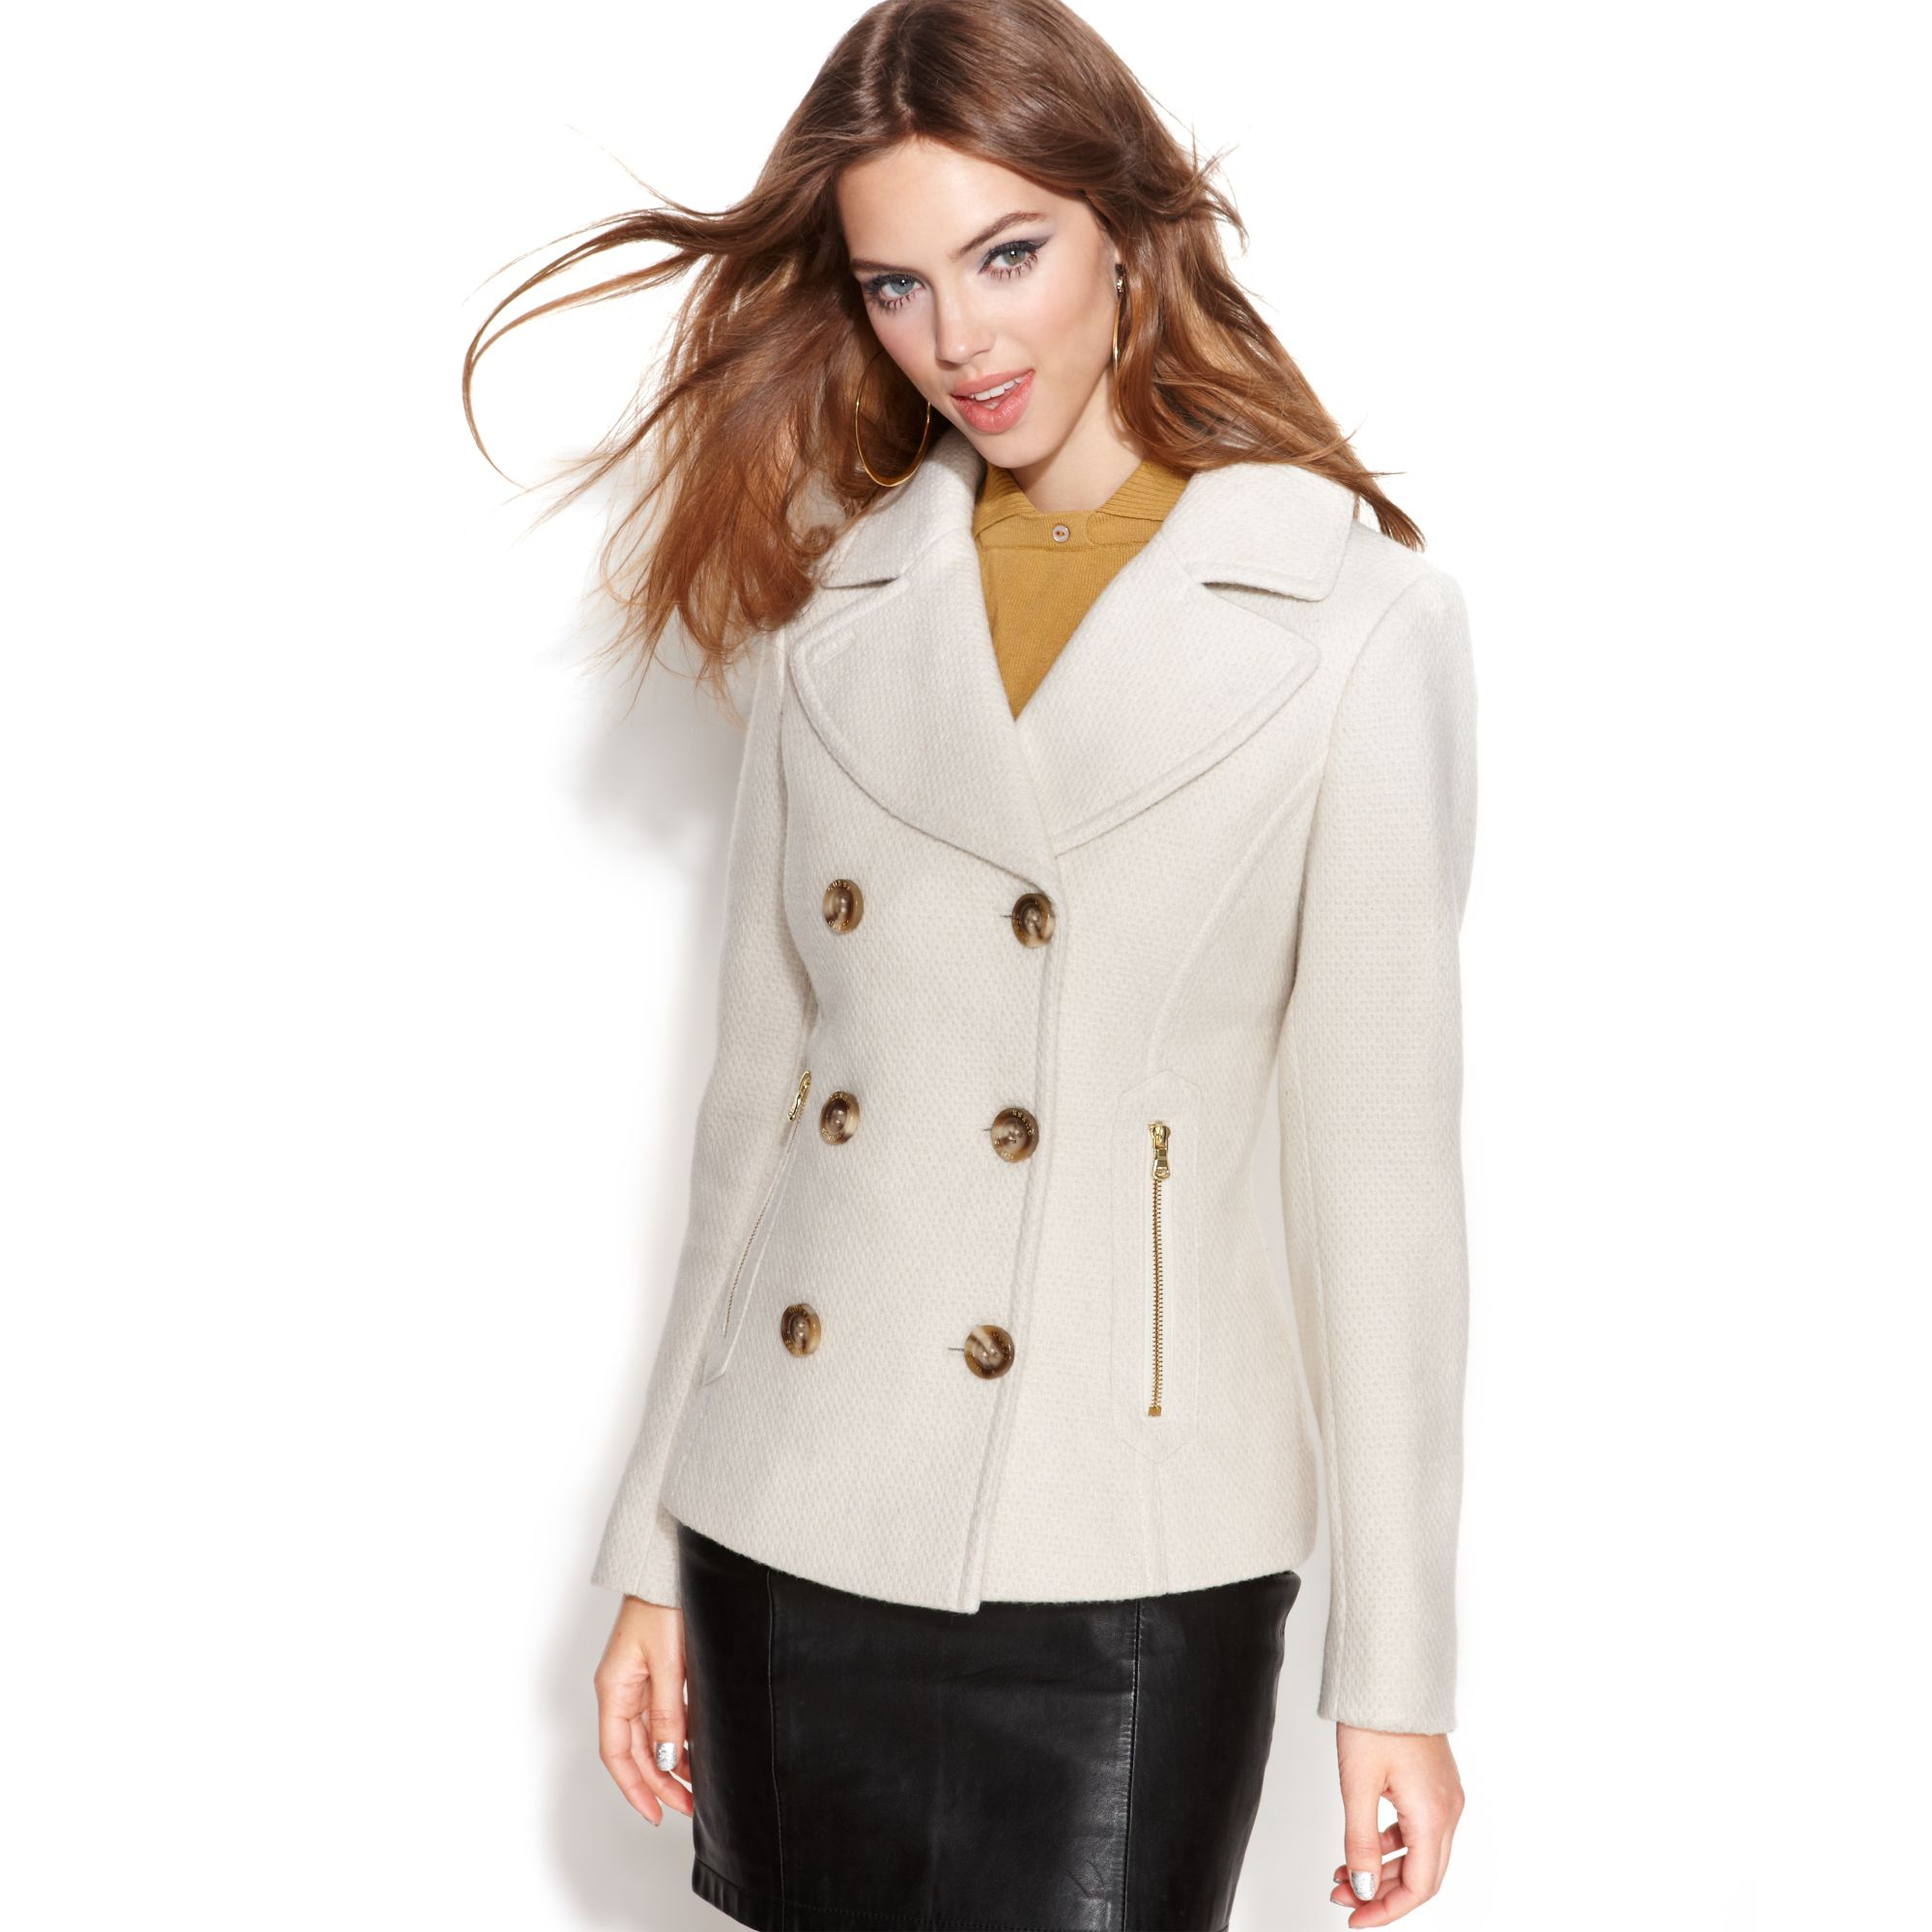 White/Cream Steve Madden Pea Coat. Small stain near slit on back. Size Small. Top (collar) button is missing. Nordstrom White Ivory Wool Pea Coat - size XS. $ 0 bids. Fitted with a flattering inset waist, oversized pockets, and fully lined inside with a fun a pattern. All buttons intact and no stains.